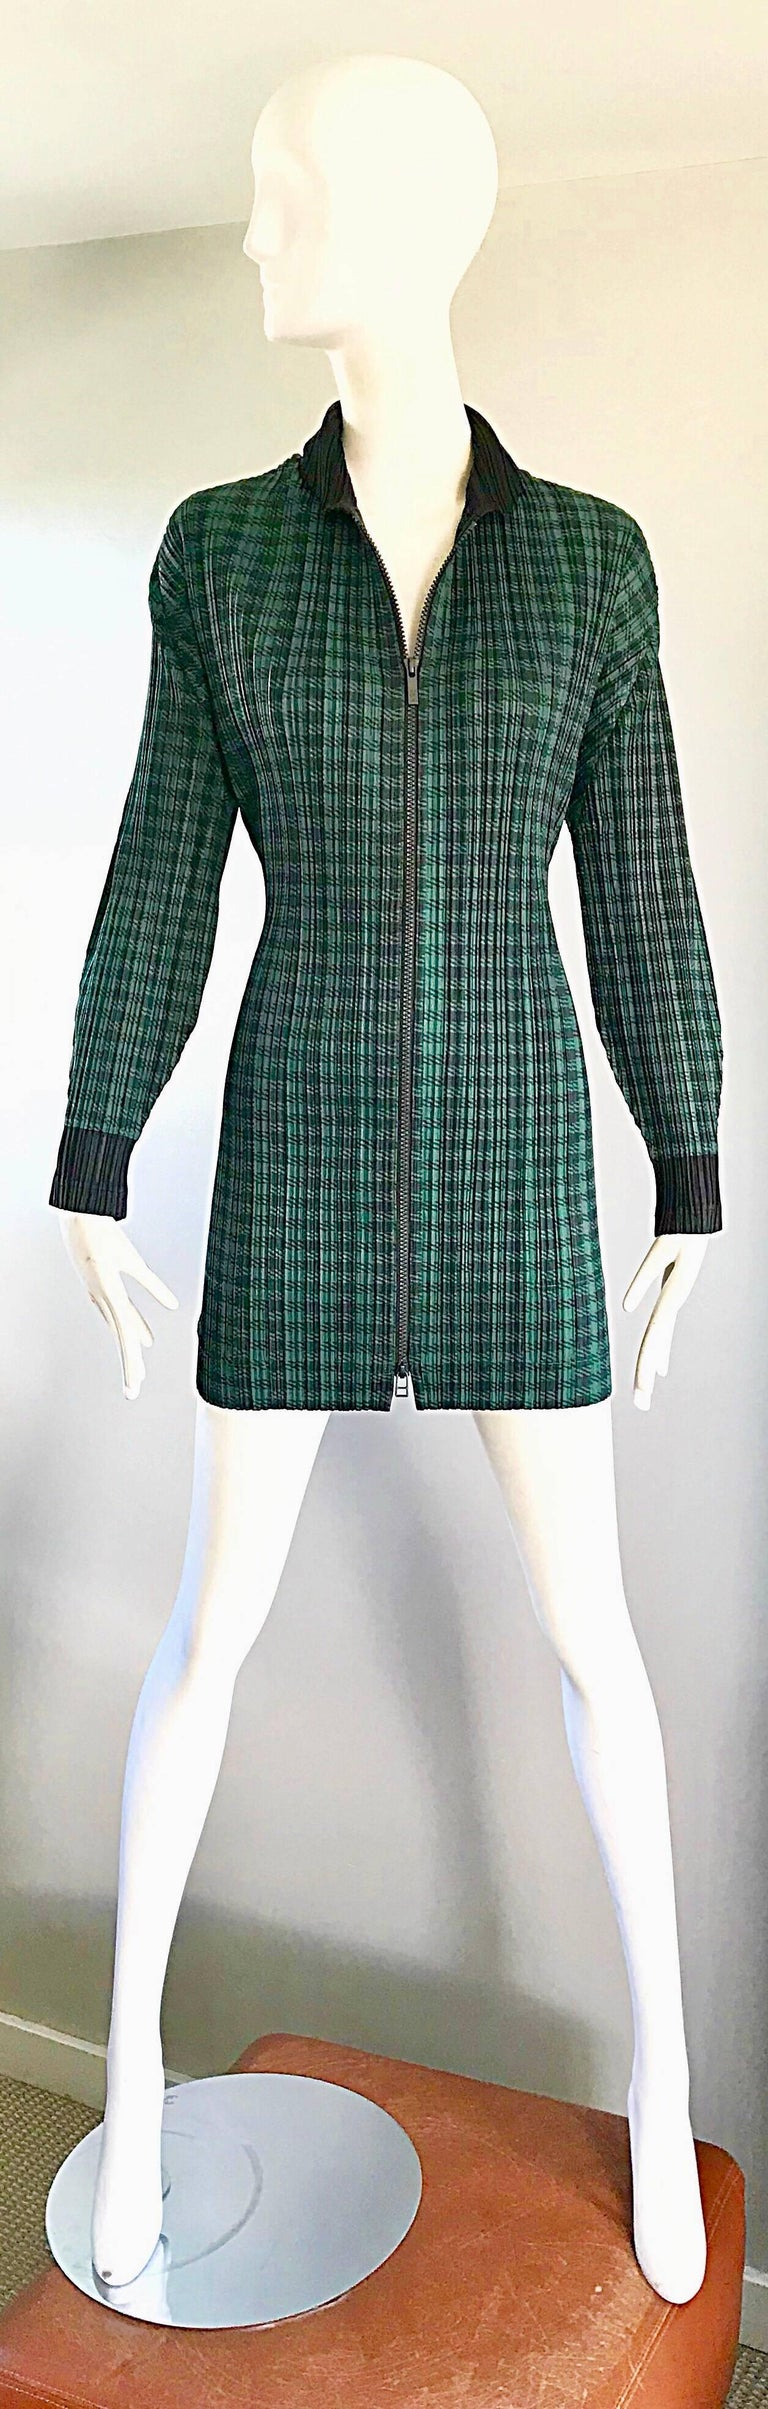 Vintage Issey Miyake Pleats Please 90s Green Black Checkered Jacket Mini Dress For Sale At 1stdibs